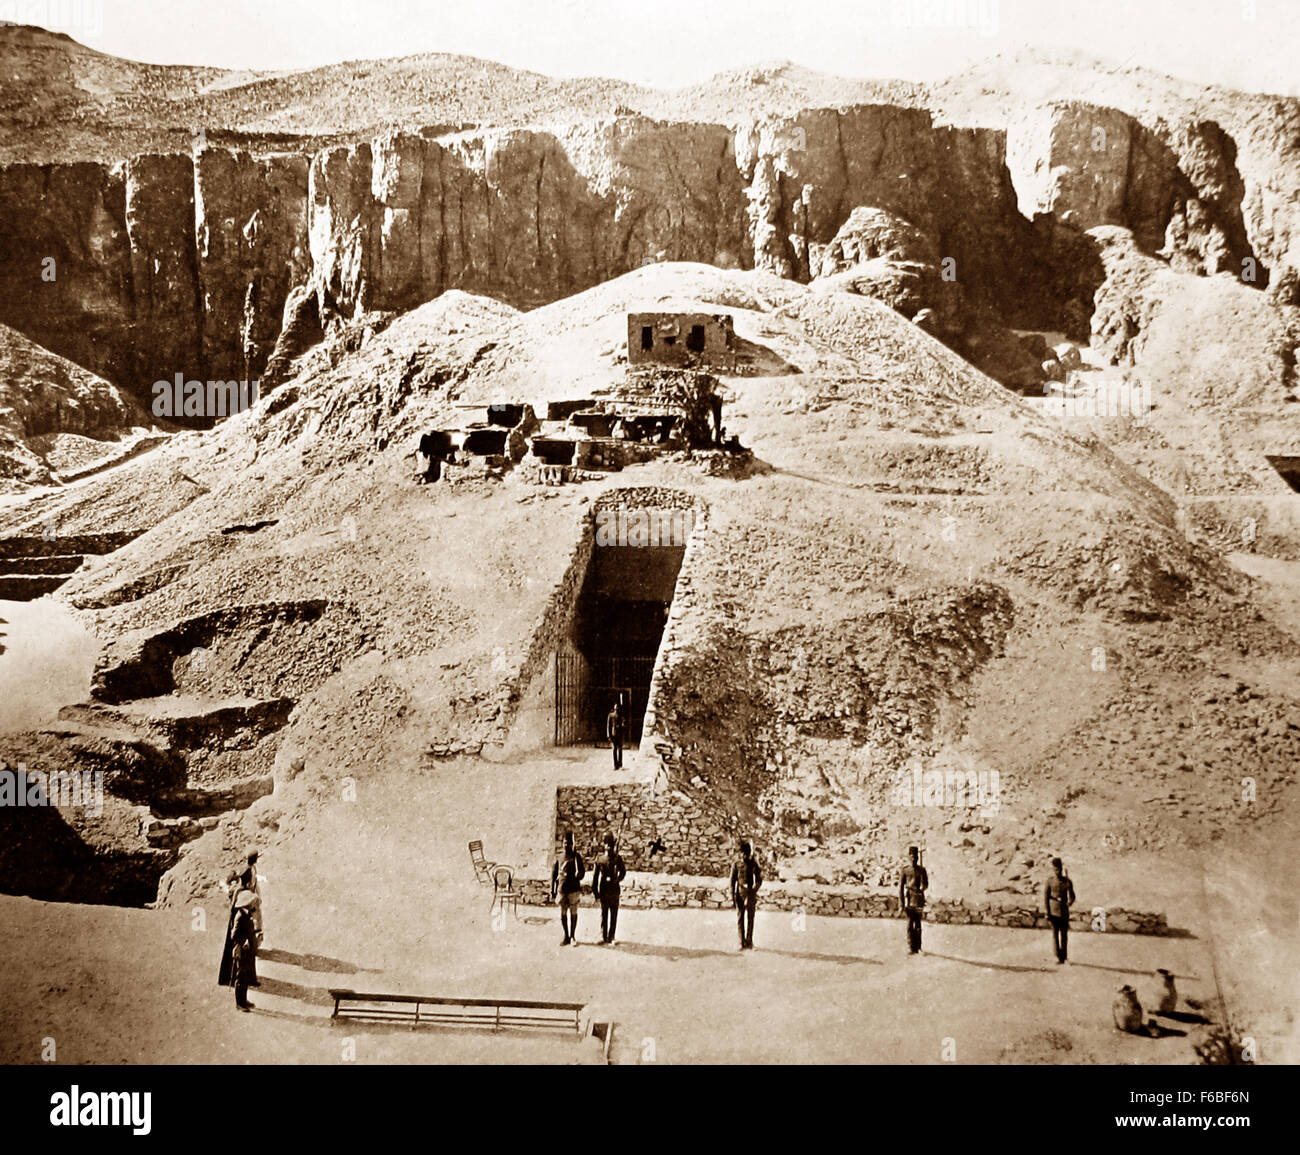 Guarding the tomb of Tutankhamun in the Valley of the Kings, Egypt in 1922 - Stock Image